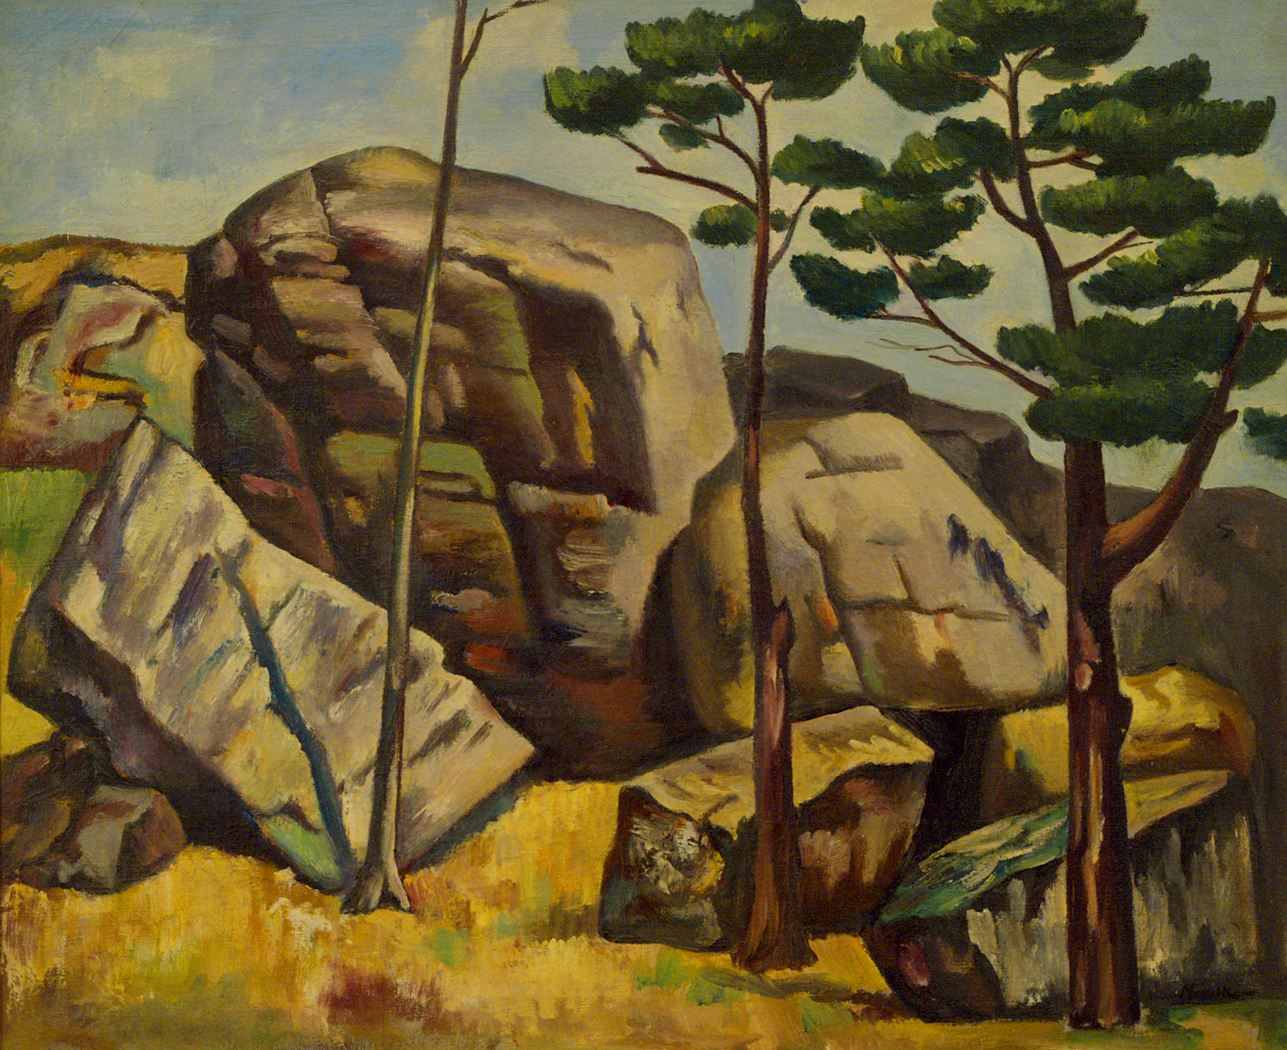 alt Untitled (Landscape with Rocks and Trees)c. 1925